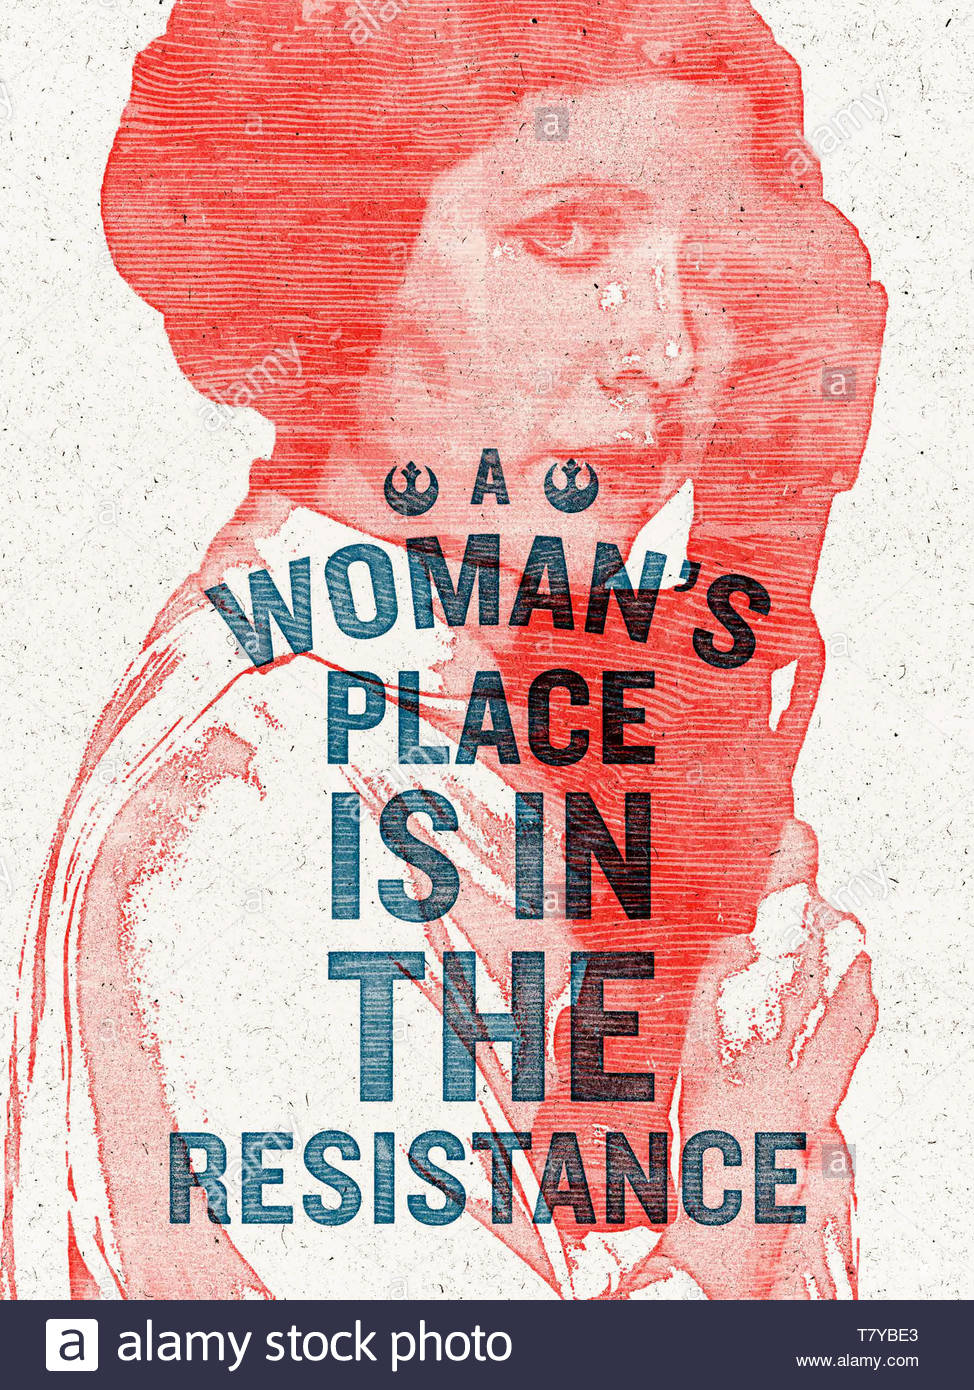 """A Woman's Place is in the Resistance"" 2017 iconic women's rights protest poster designed by graphic designer and artist Hayley Gilmore for the Women's March on Washington on 21 January 2017. See description for more information. Stock Photo"